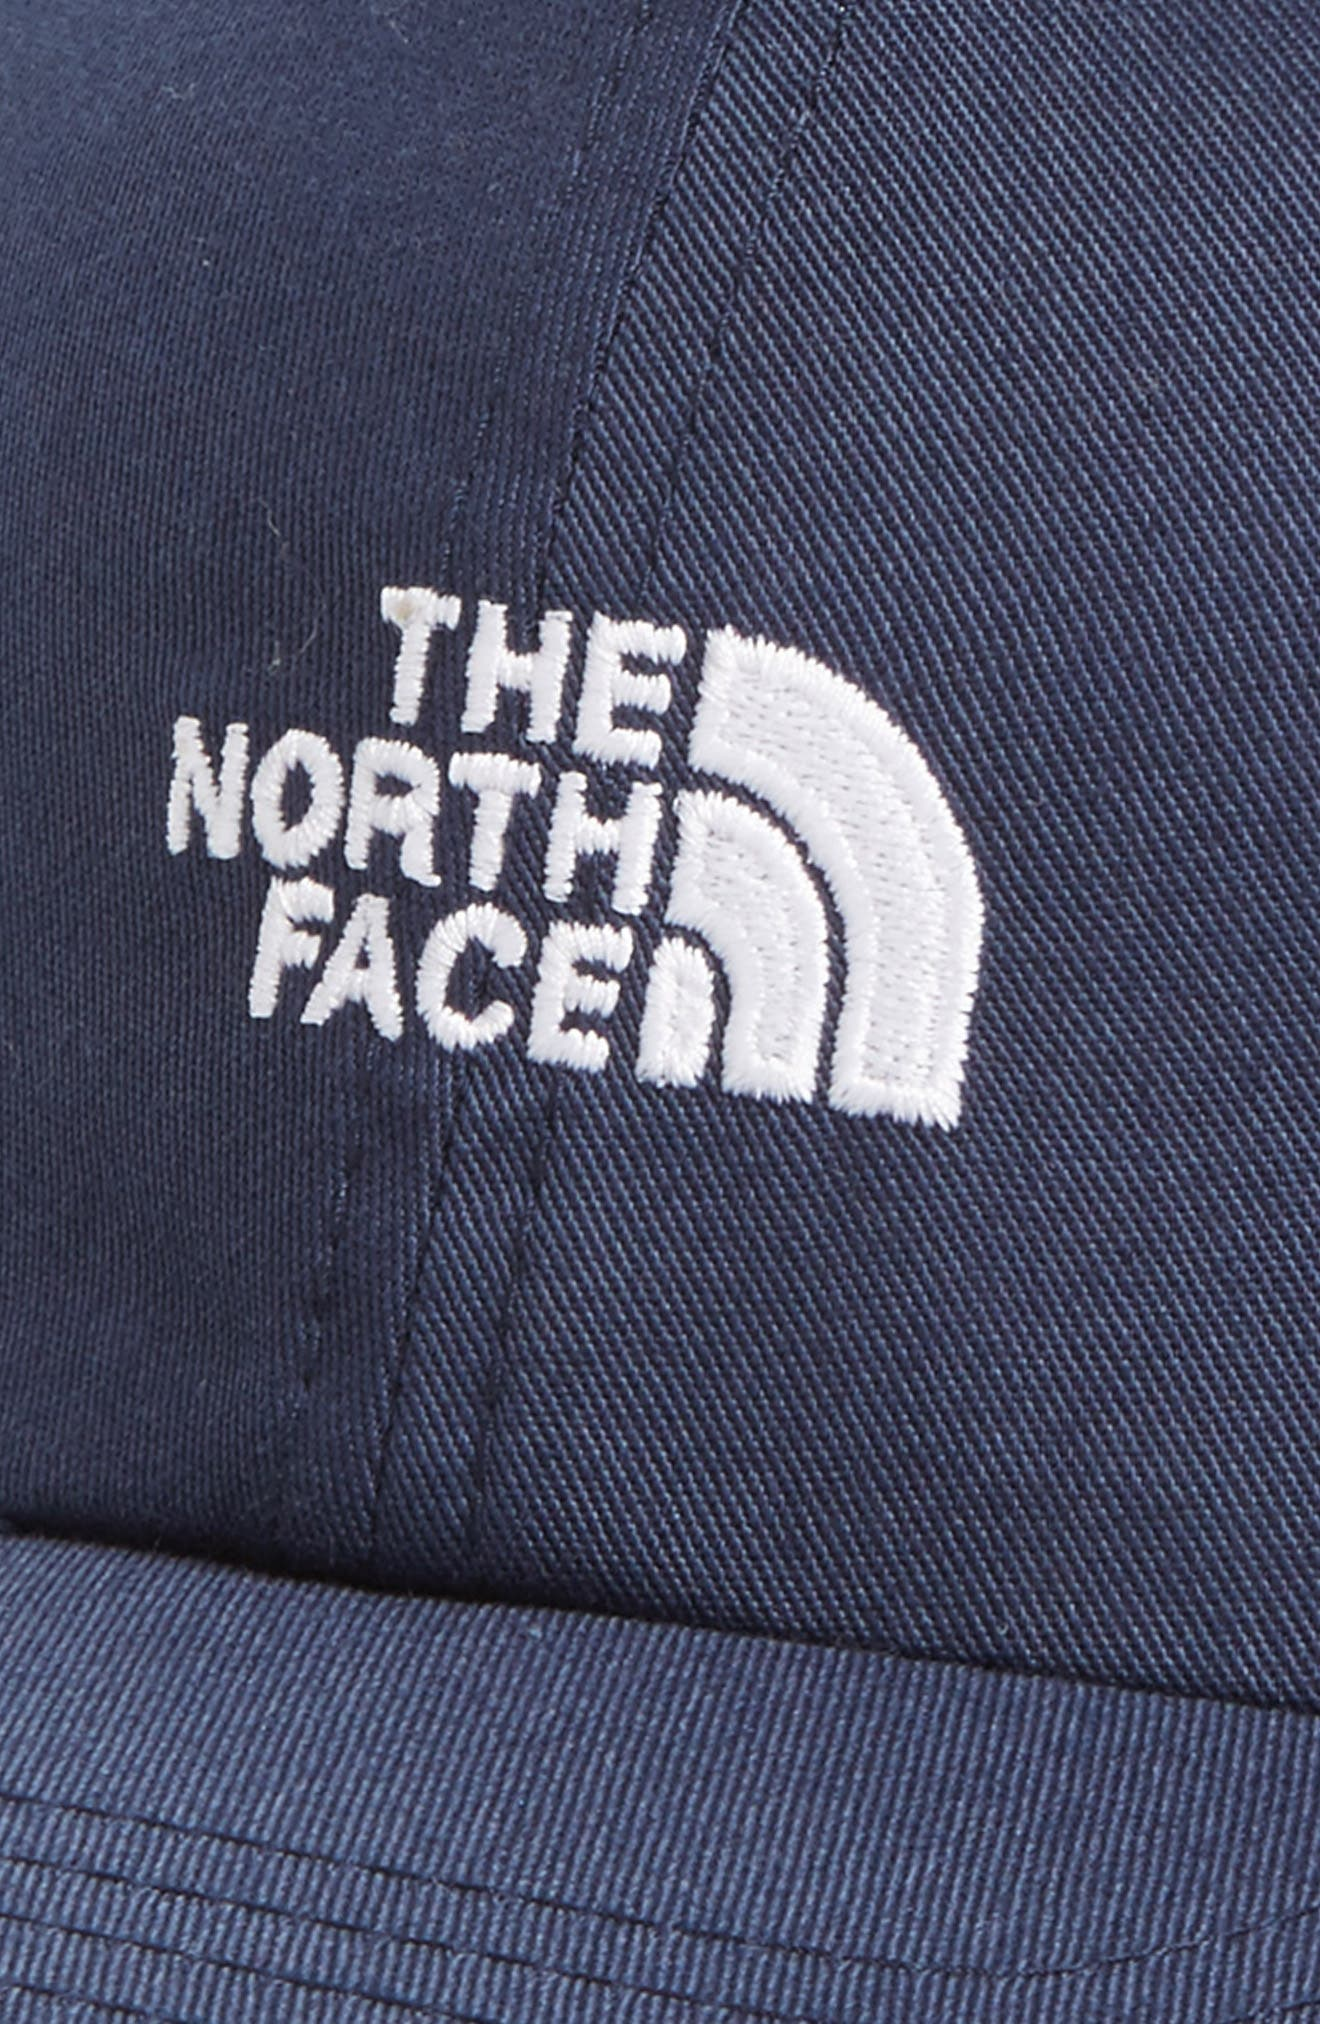 Alternate Image 3  - The North Face International Collection Baseball Cap